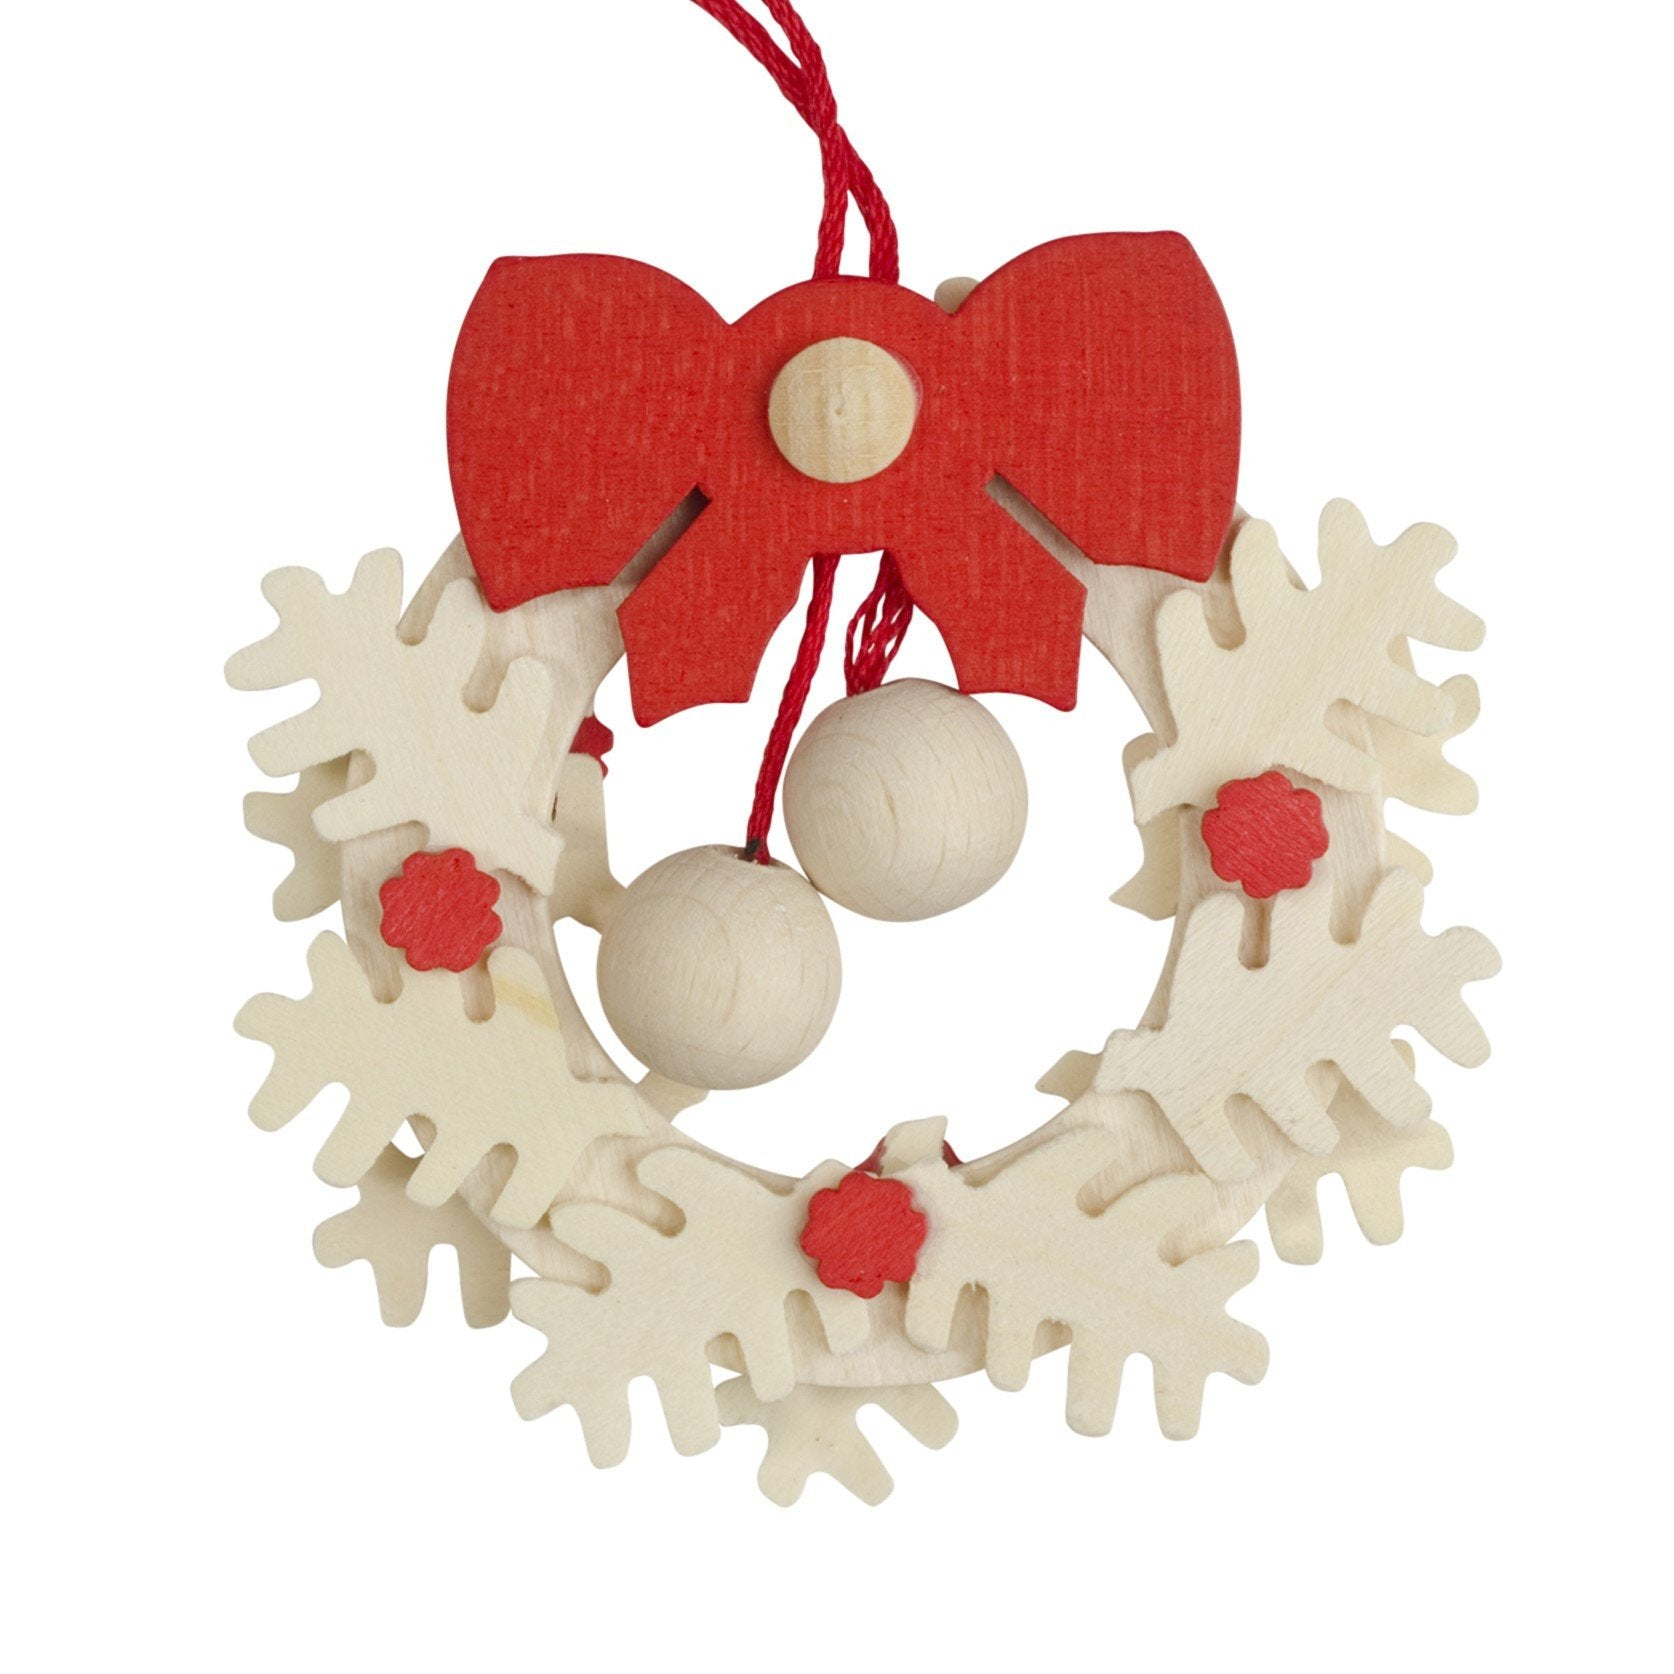 Textured Wreath with Stars - Christmas tree decoration